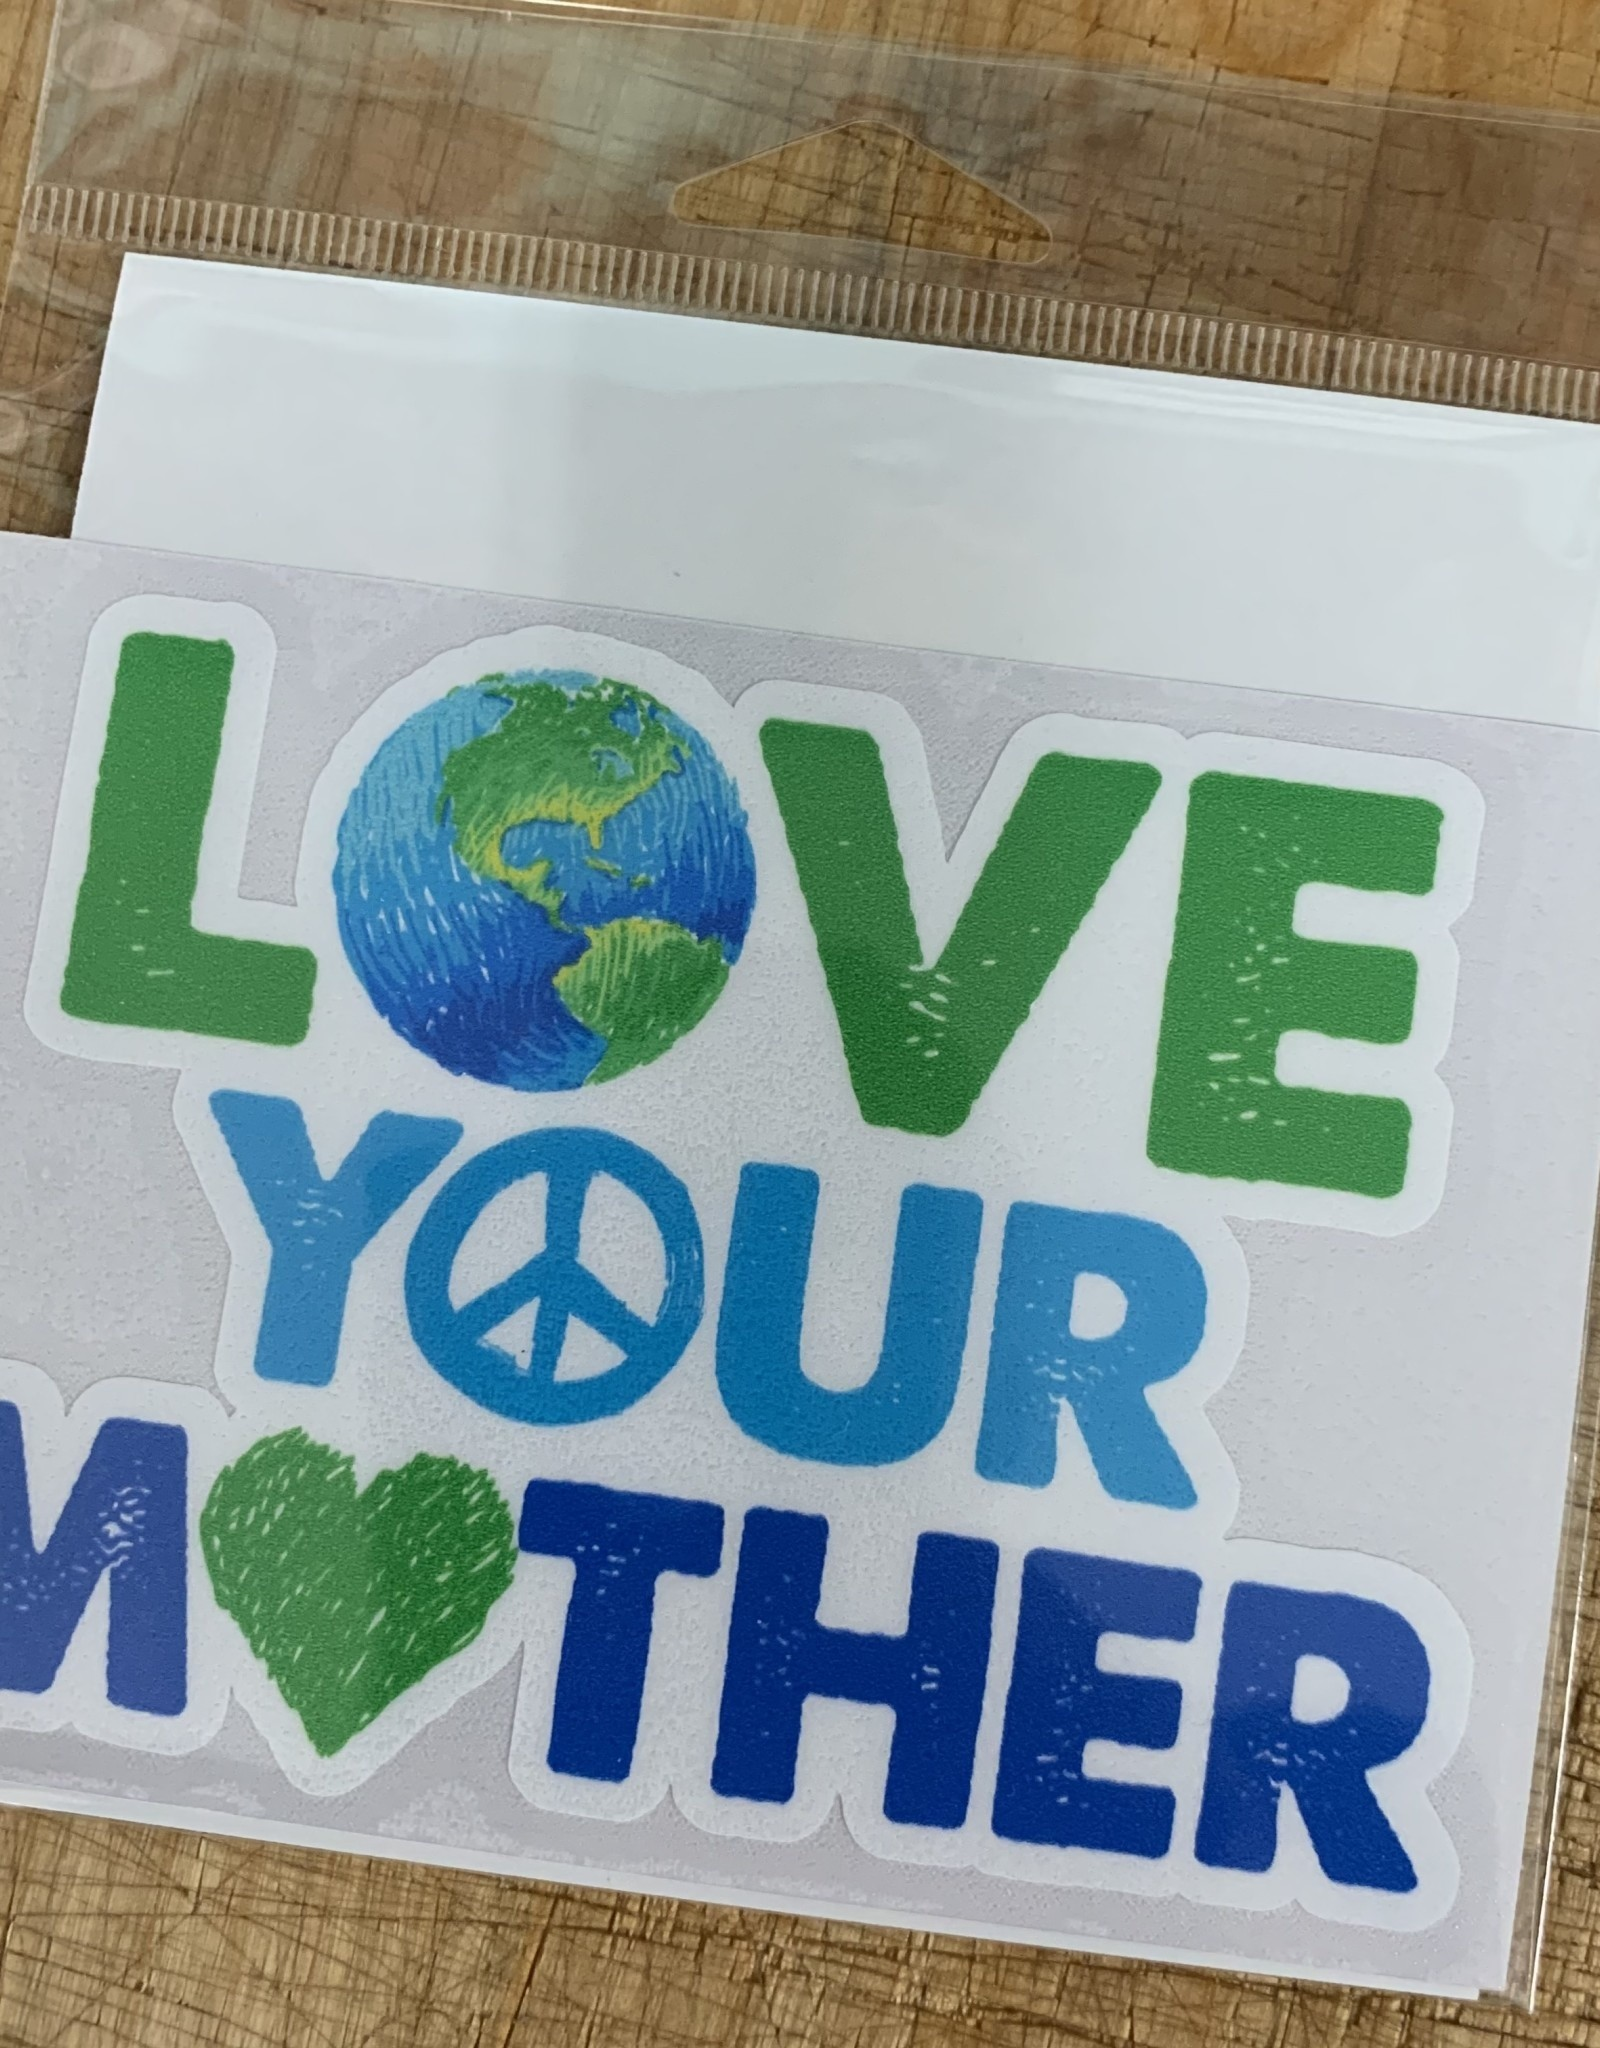 LOVE YOUR MOTHER STICKER (LARGE)